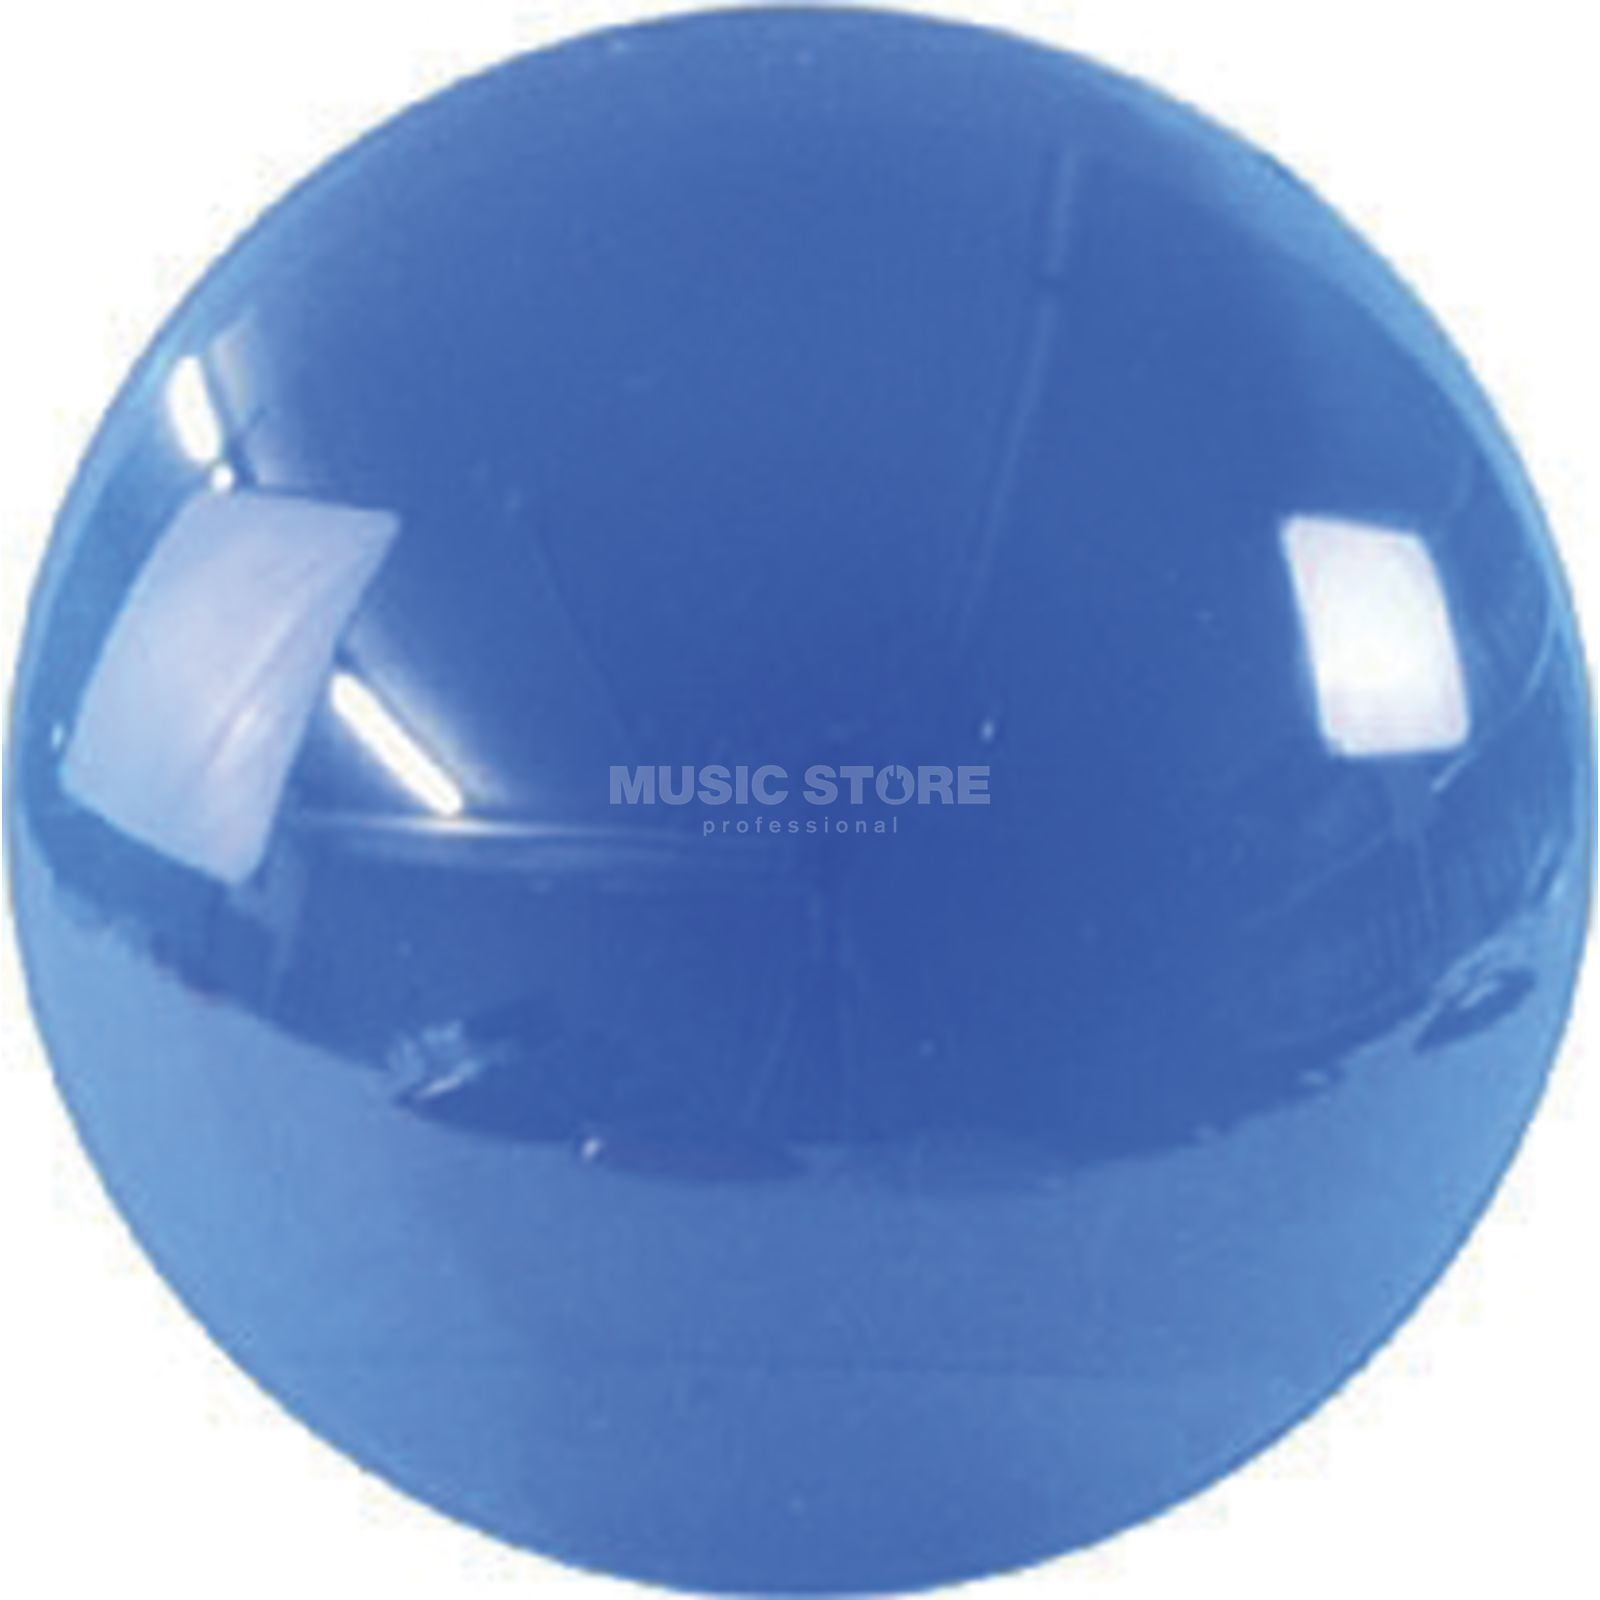 Eurolite Par 36 Color Cap Blue for Par 36 Product Image